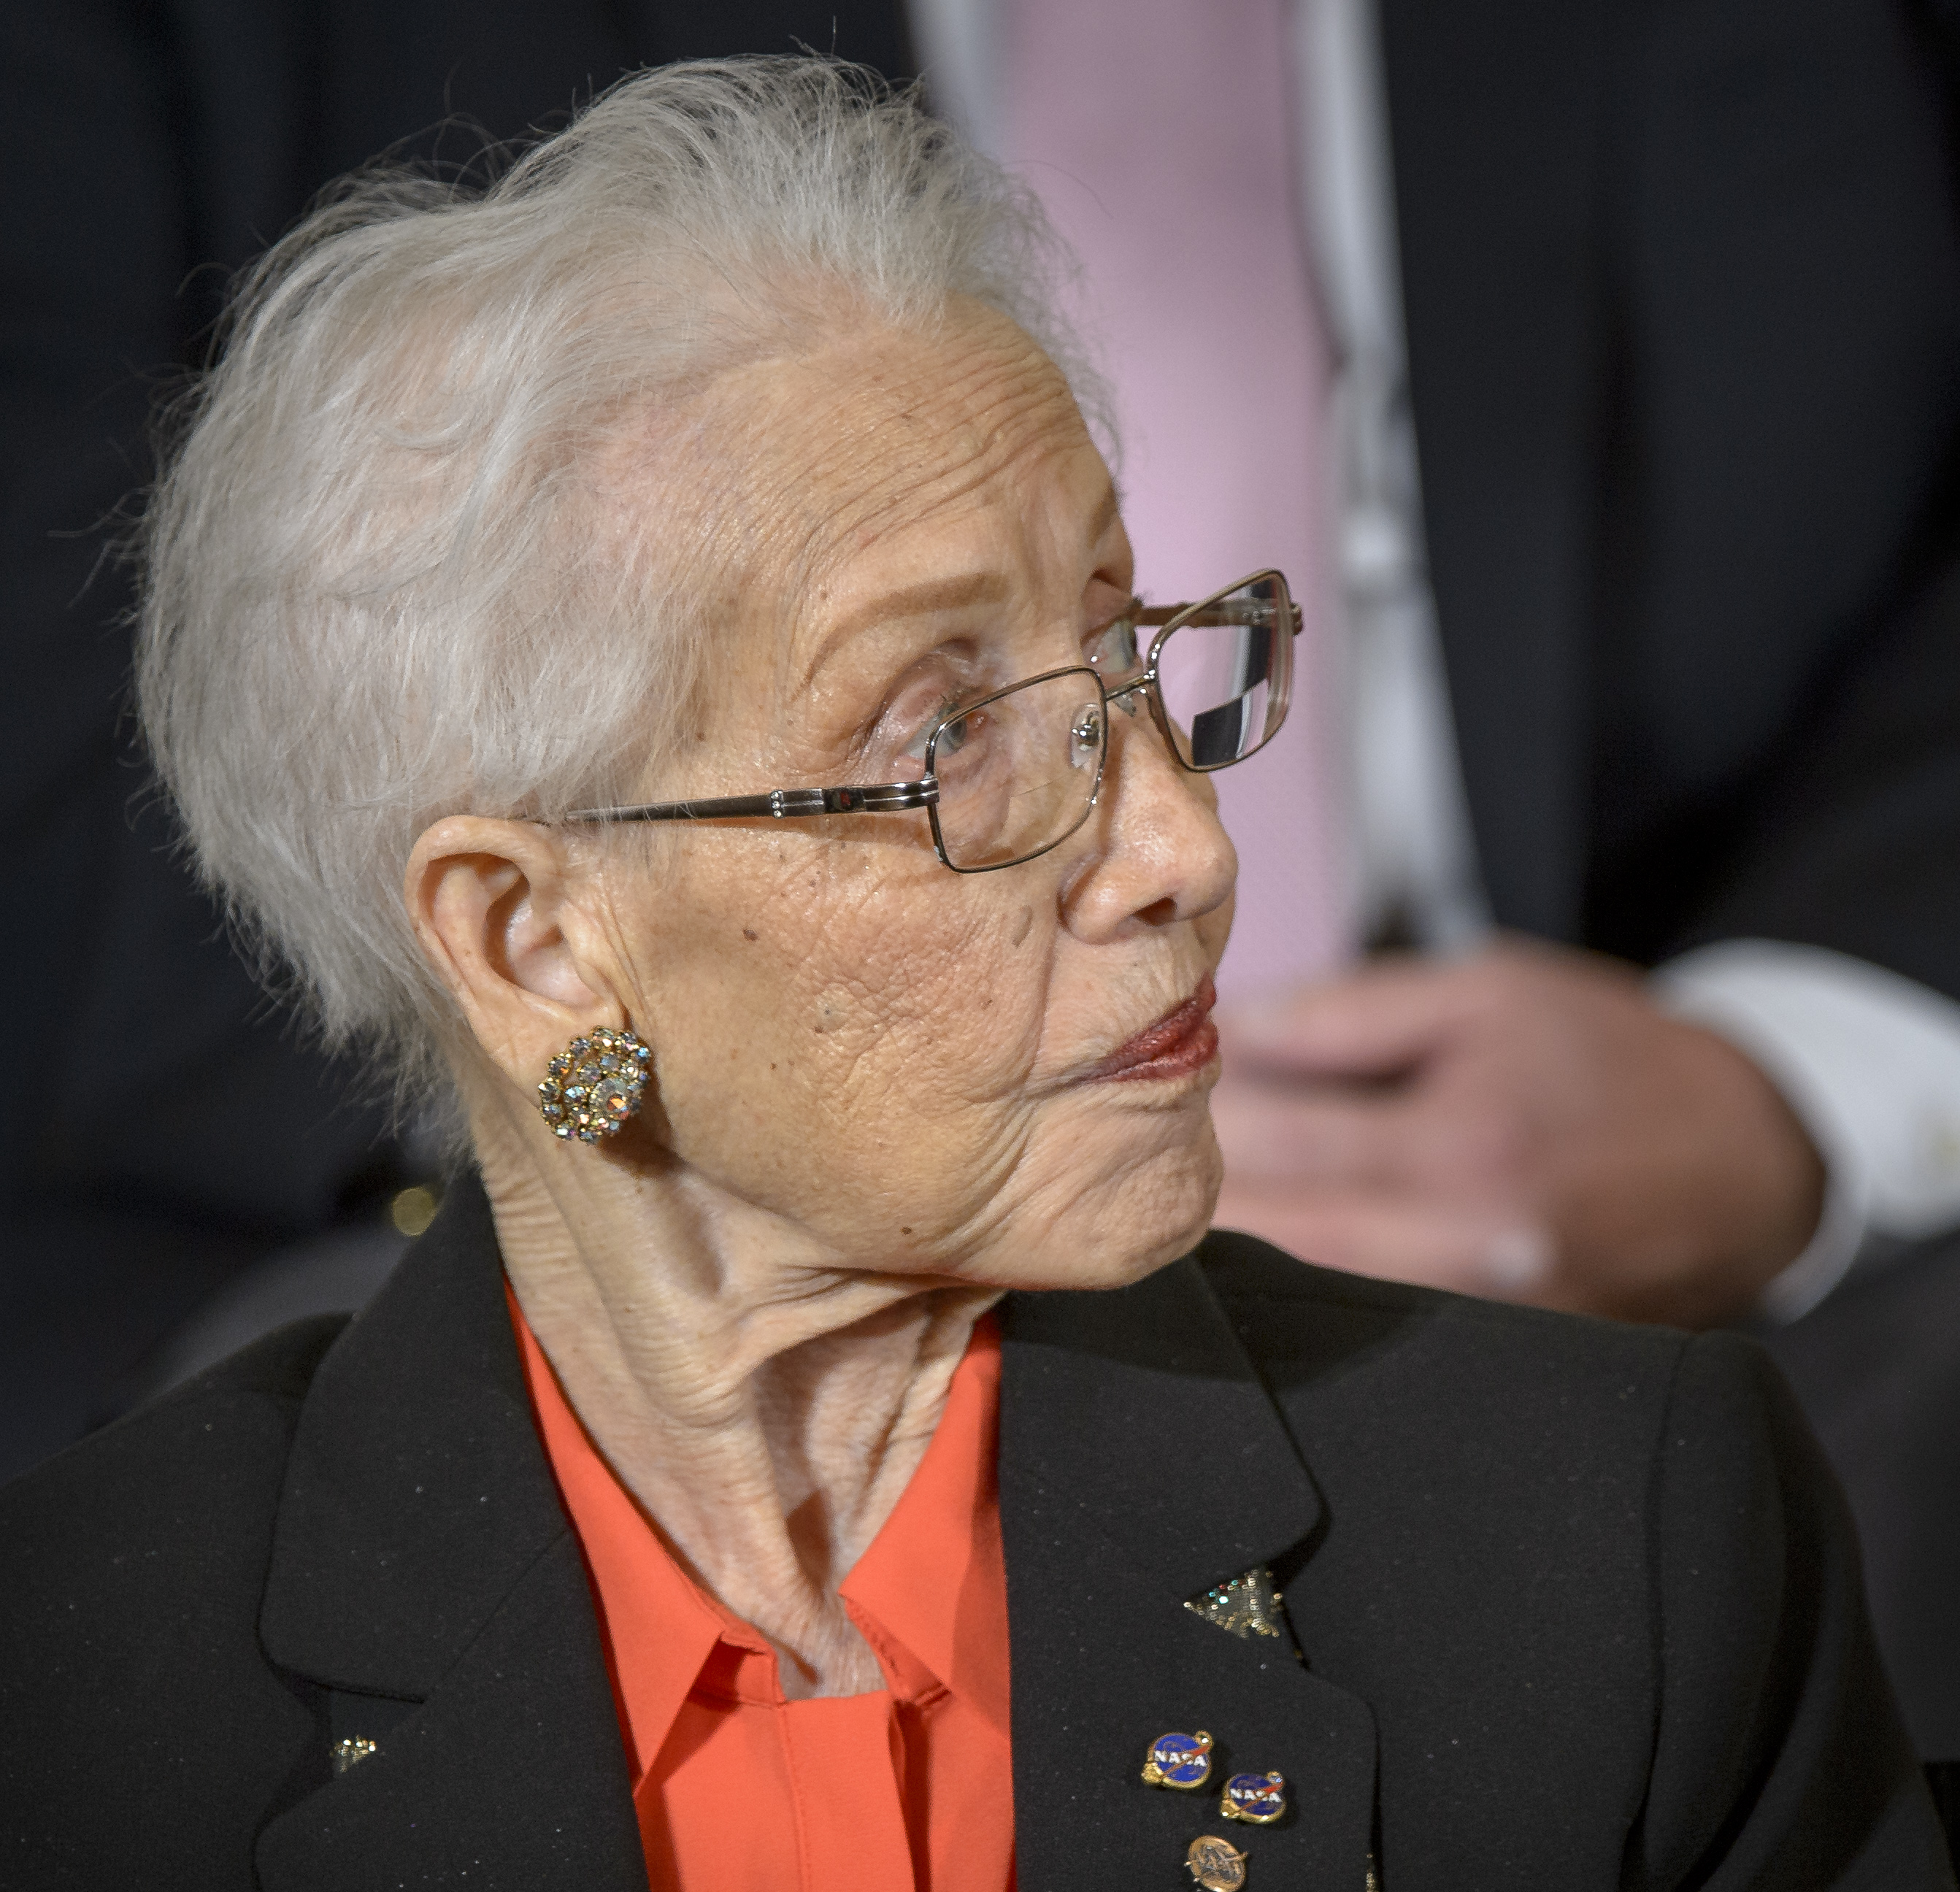 Katherine Johnson receiving the Presidential Medal of Freedom